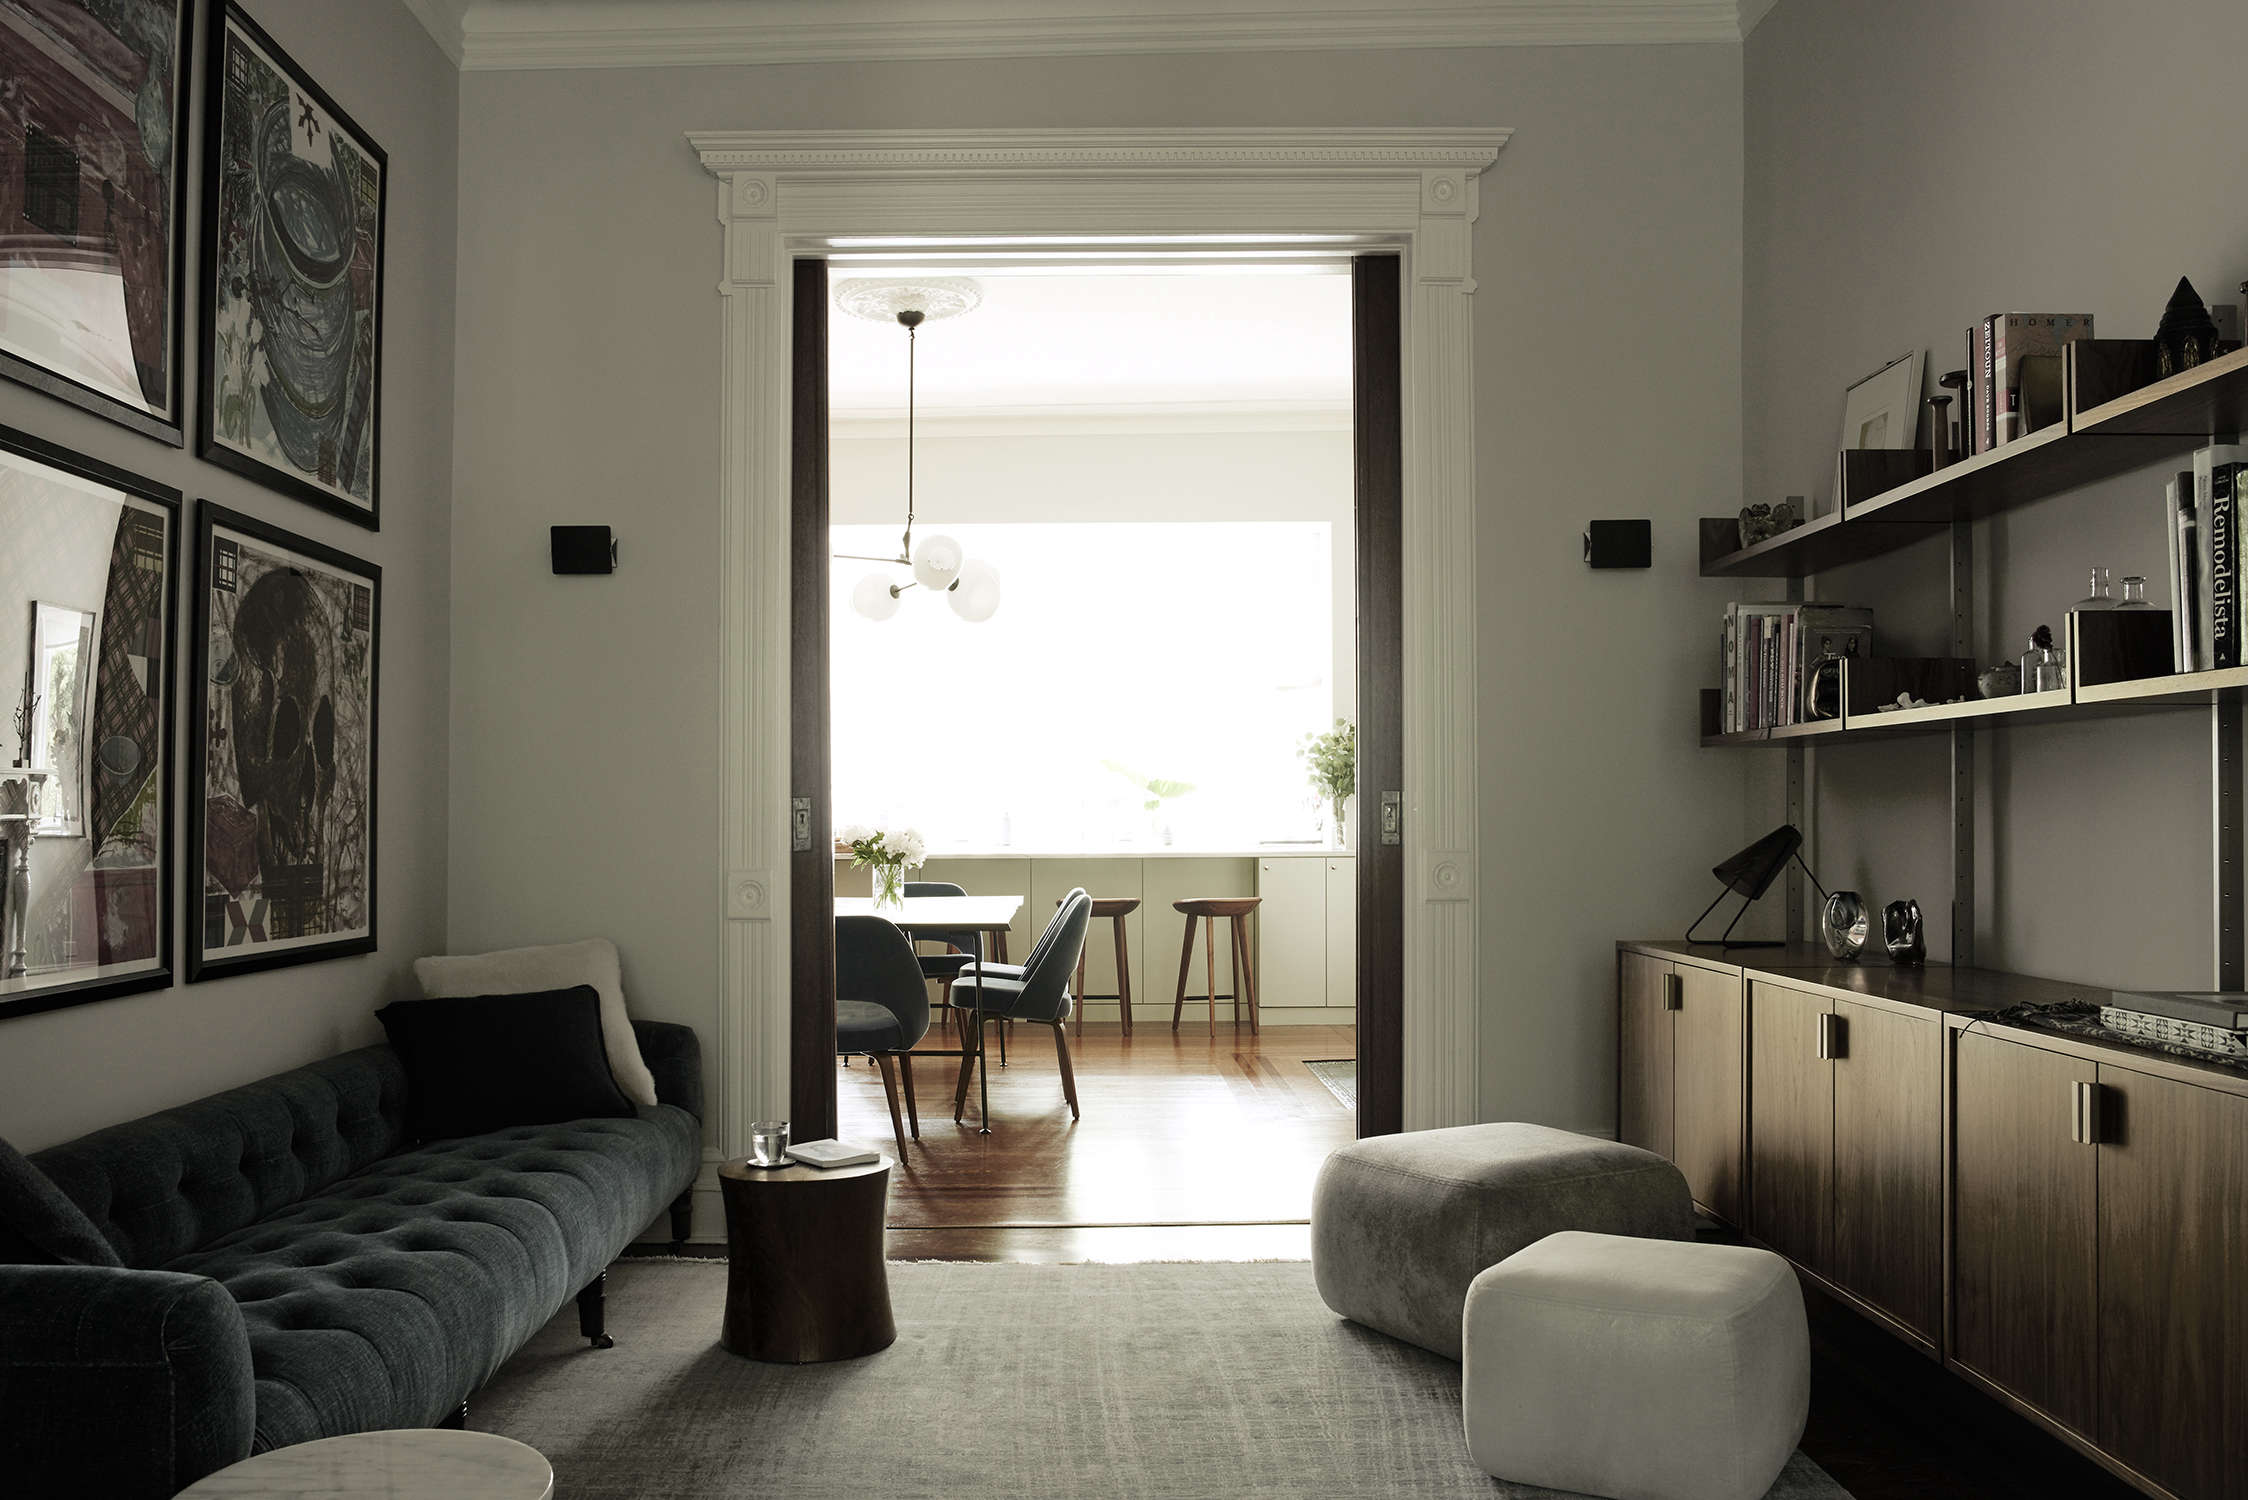 Brooklyn townhouse parlor remodel by Bangia Agostinho Architecture and Suzanne Shaker | Remodelista